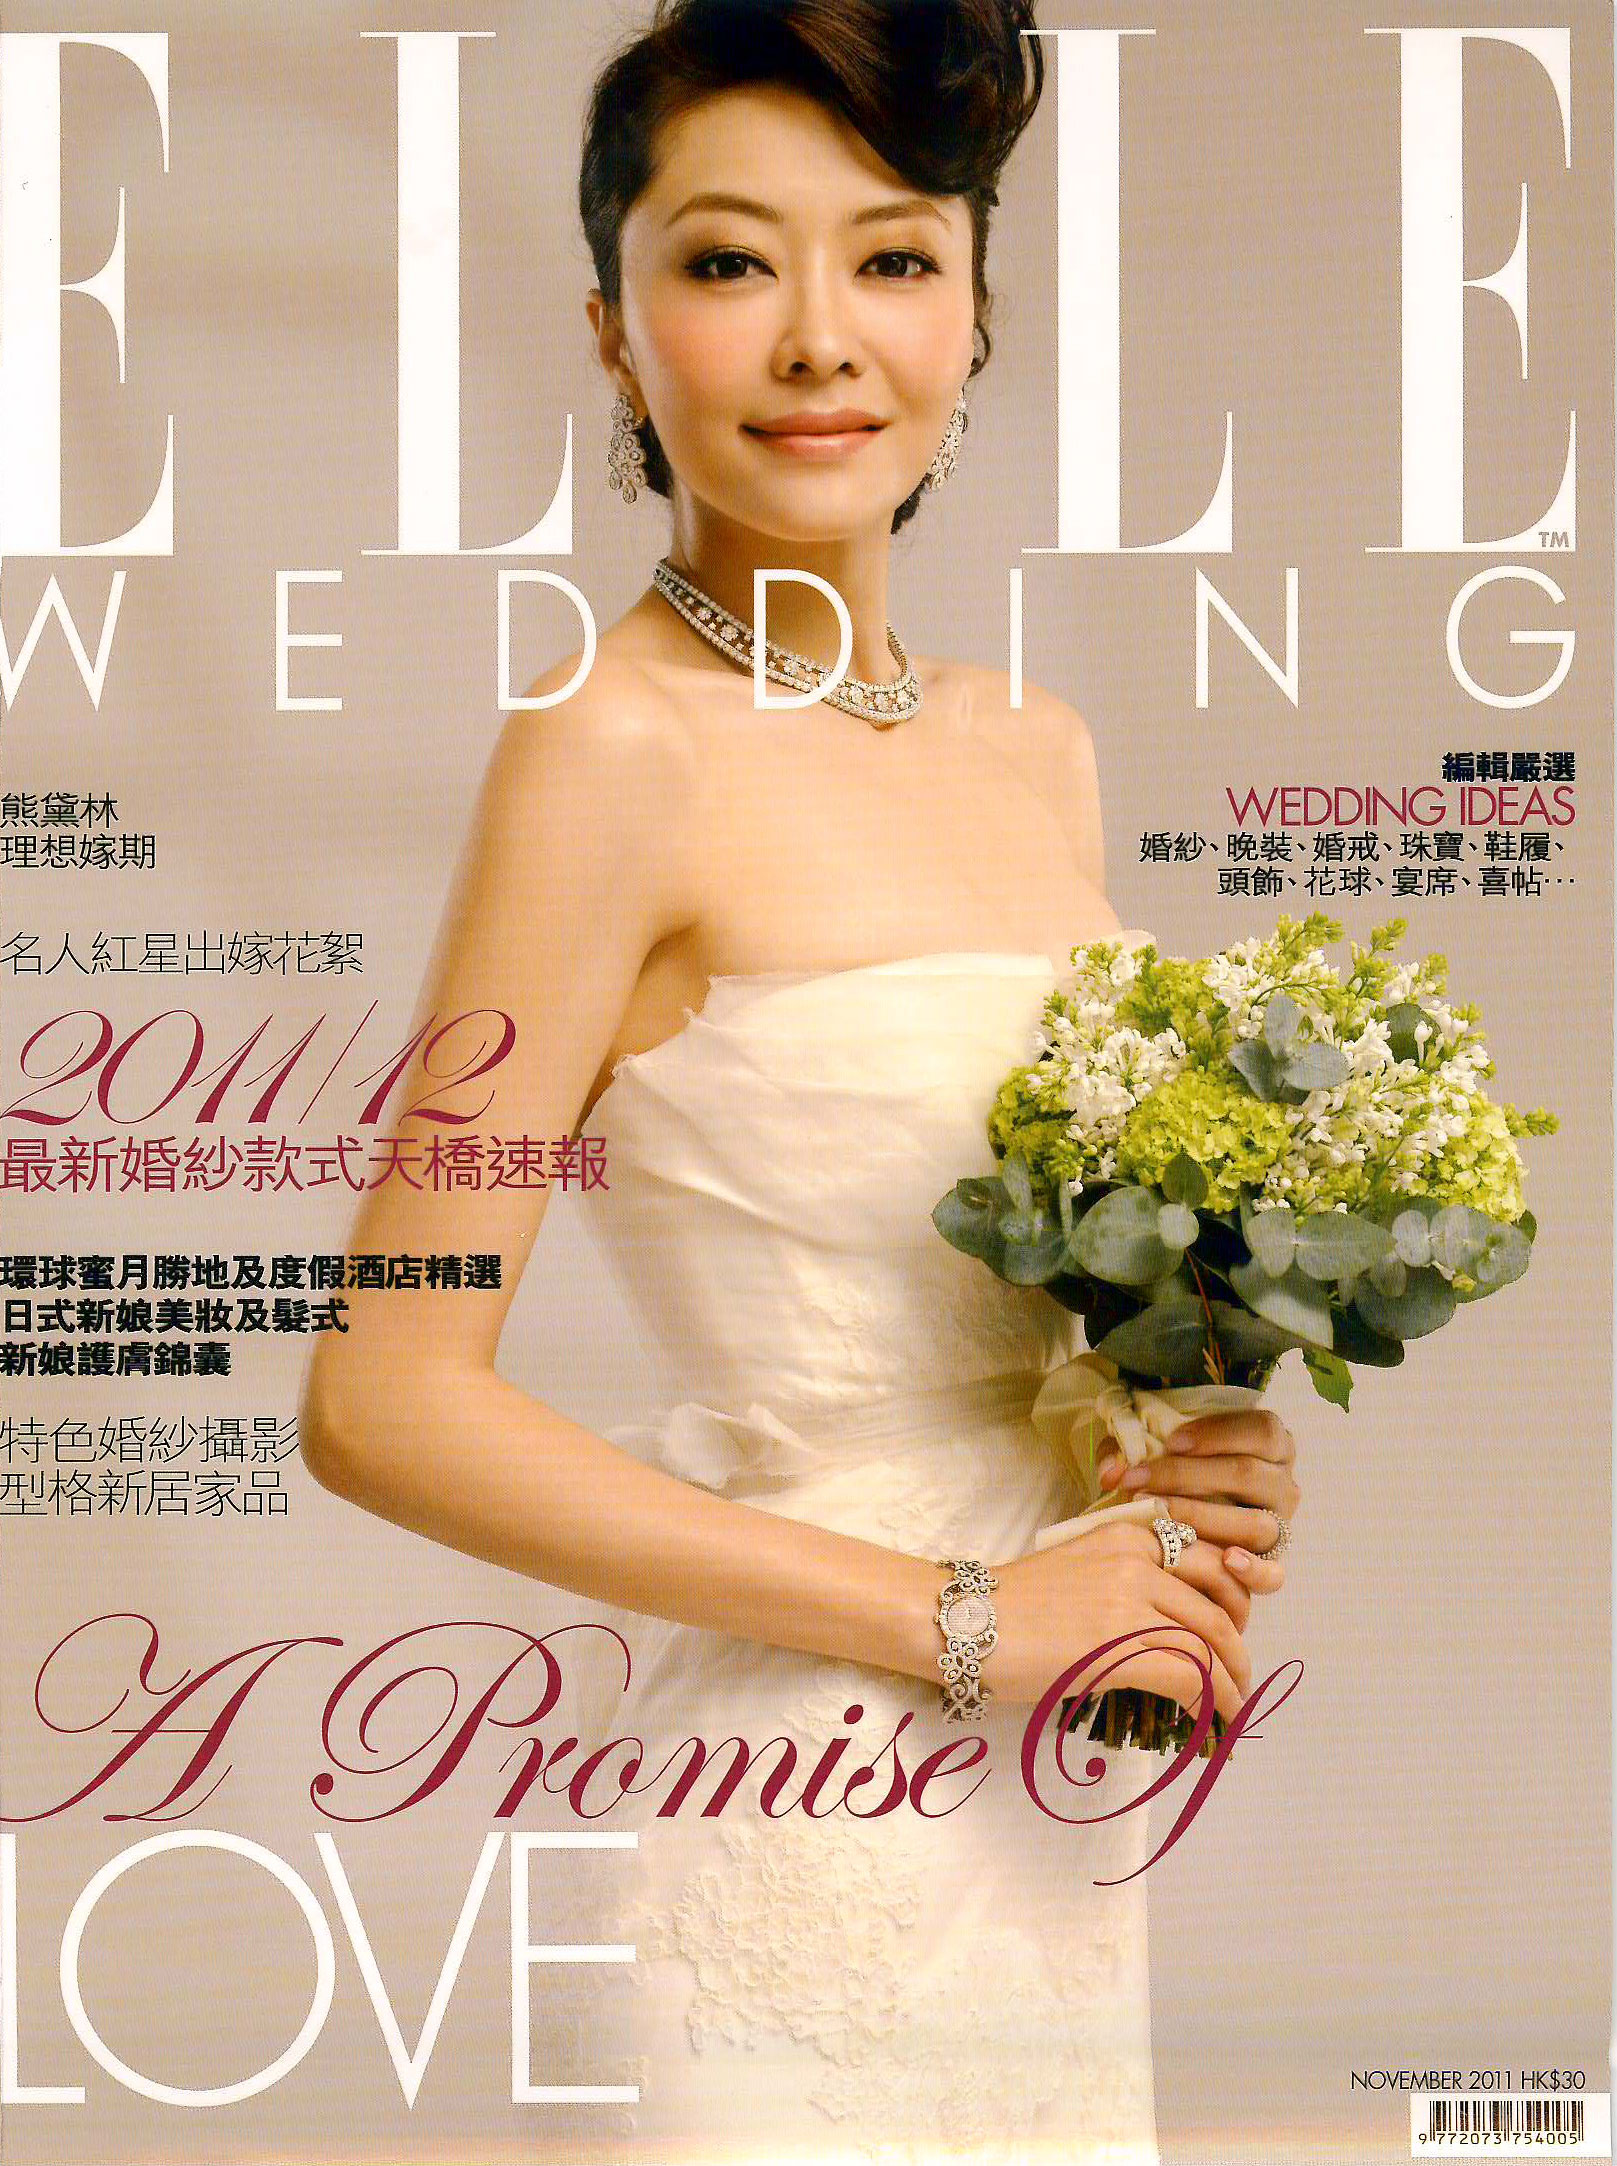 ELLE WEDDING